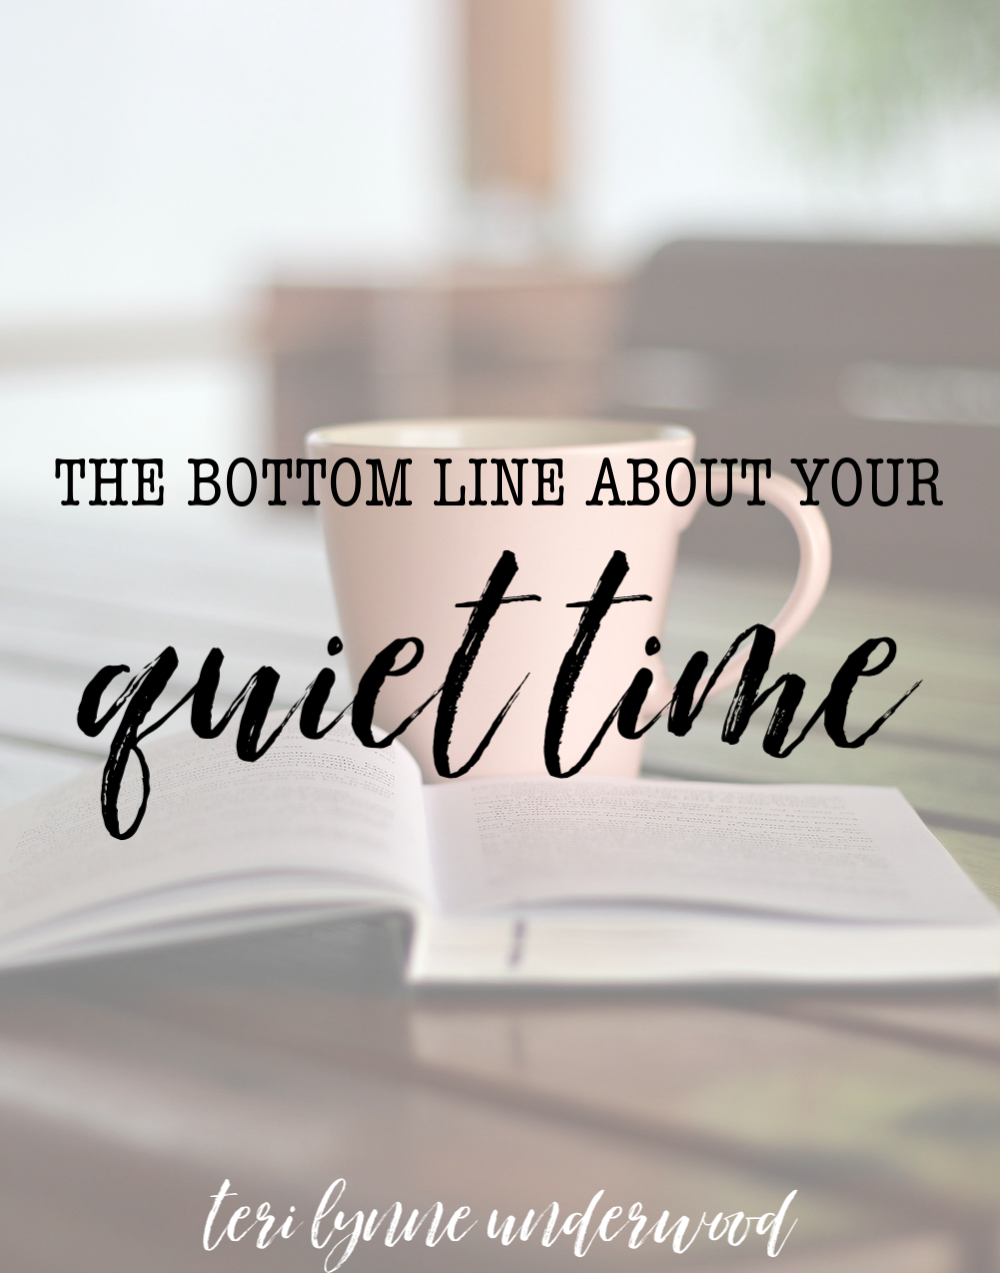 The bottom line is this — the goal of quiet times and Bible study is knowing God more intimately.